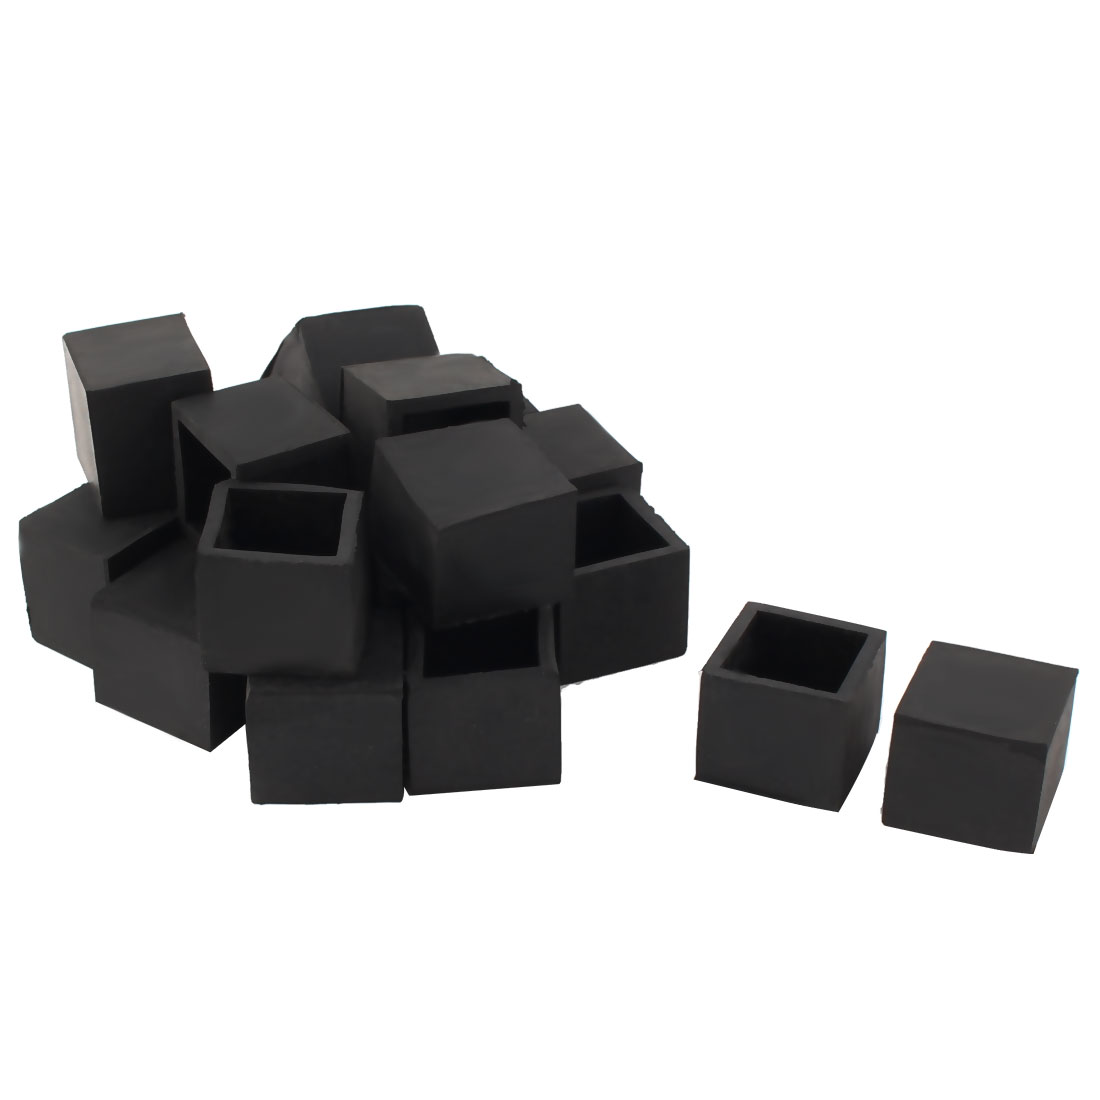 24mm x 24mm Square Tube Insert Table Desk Leg Foot Rubber End Caps Black 20pcs